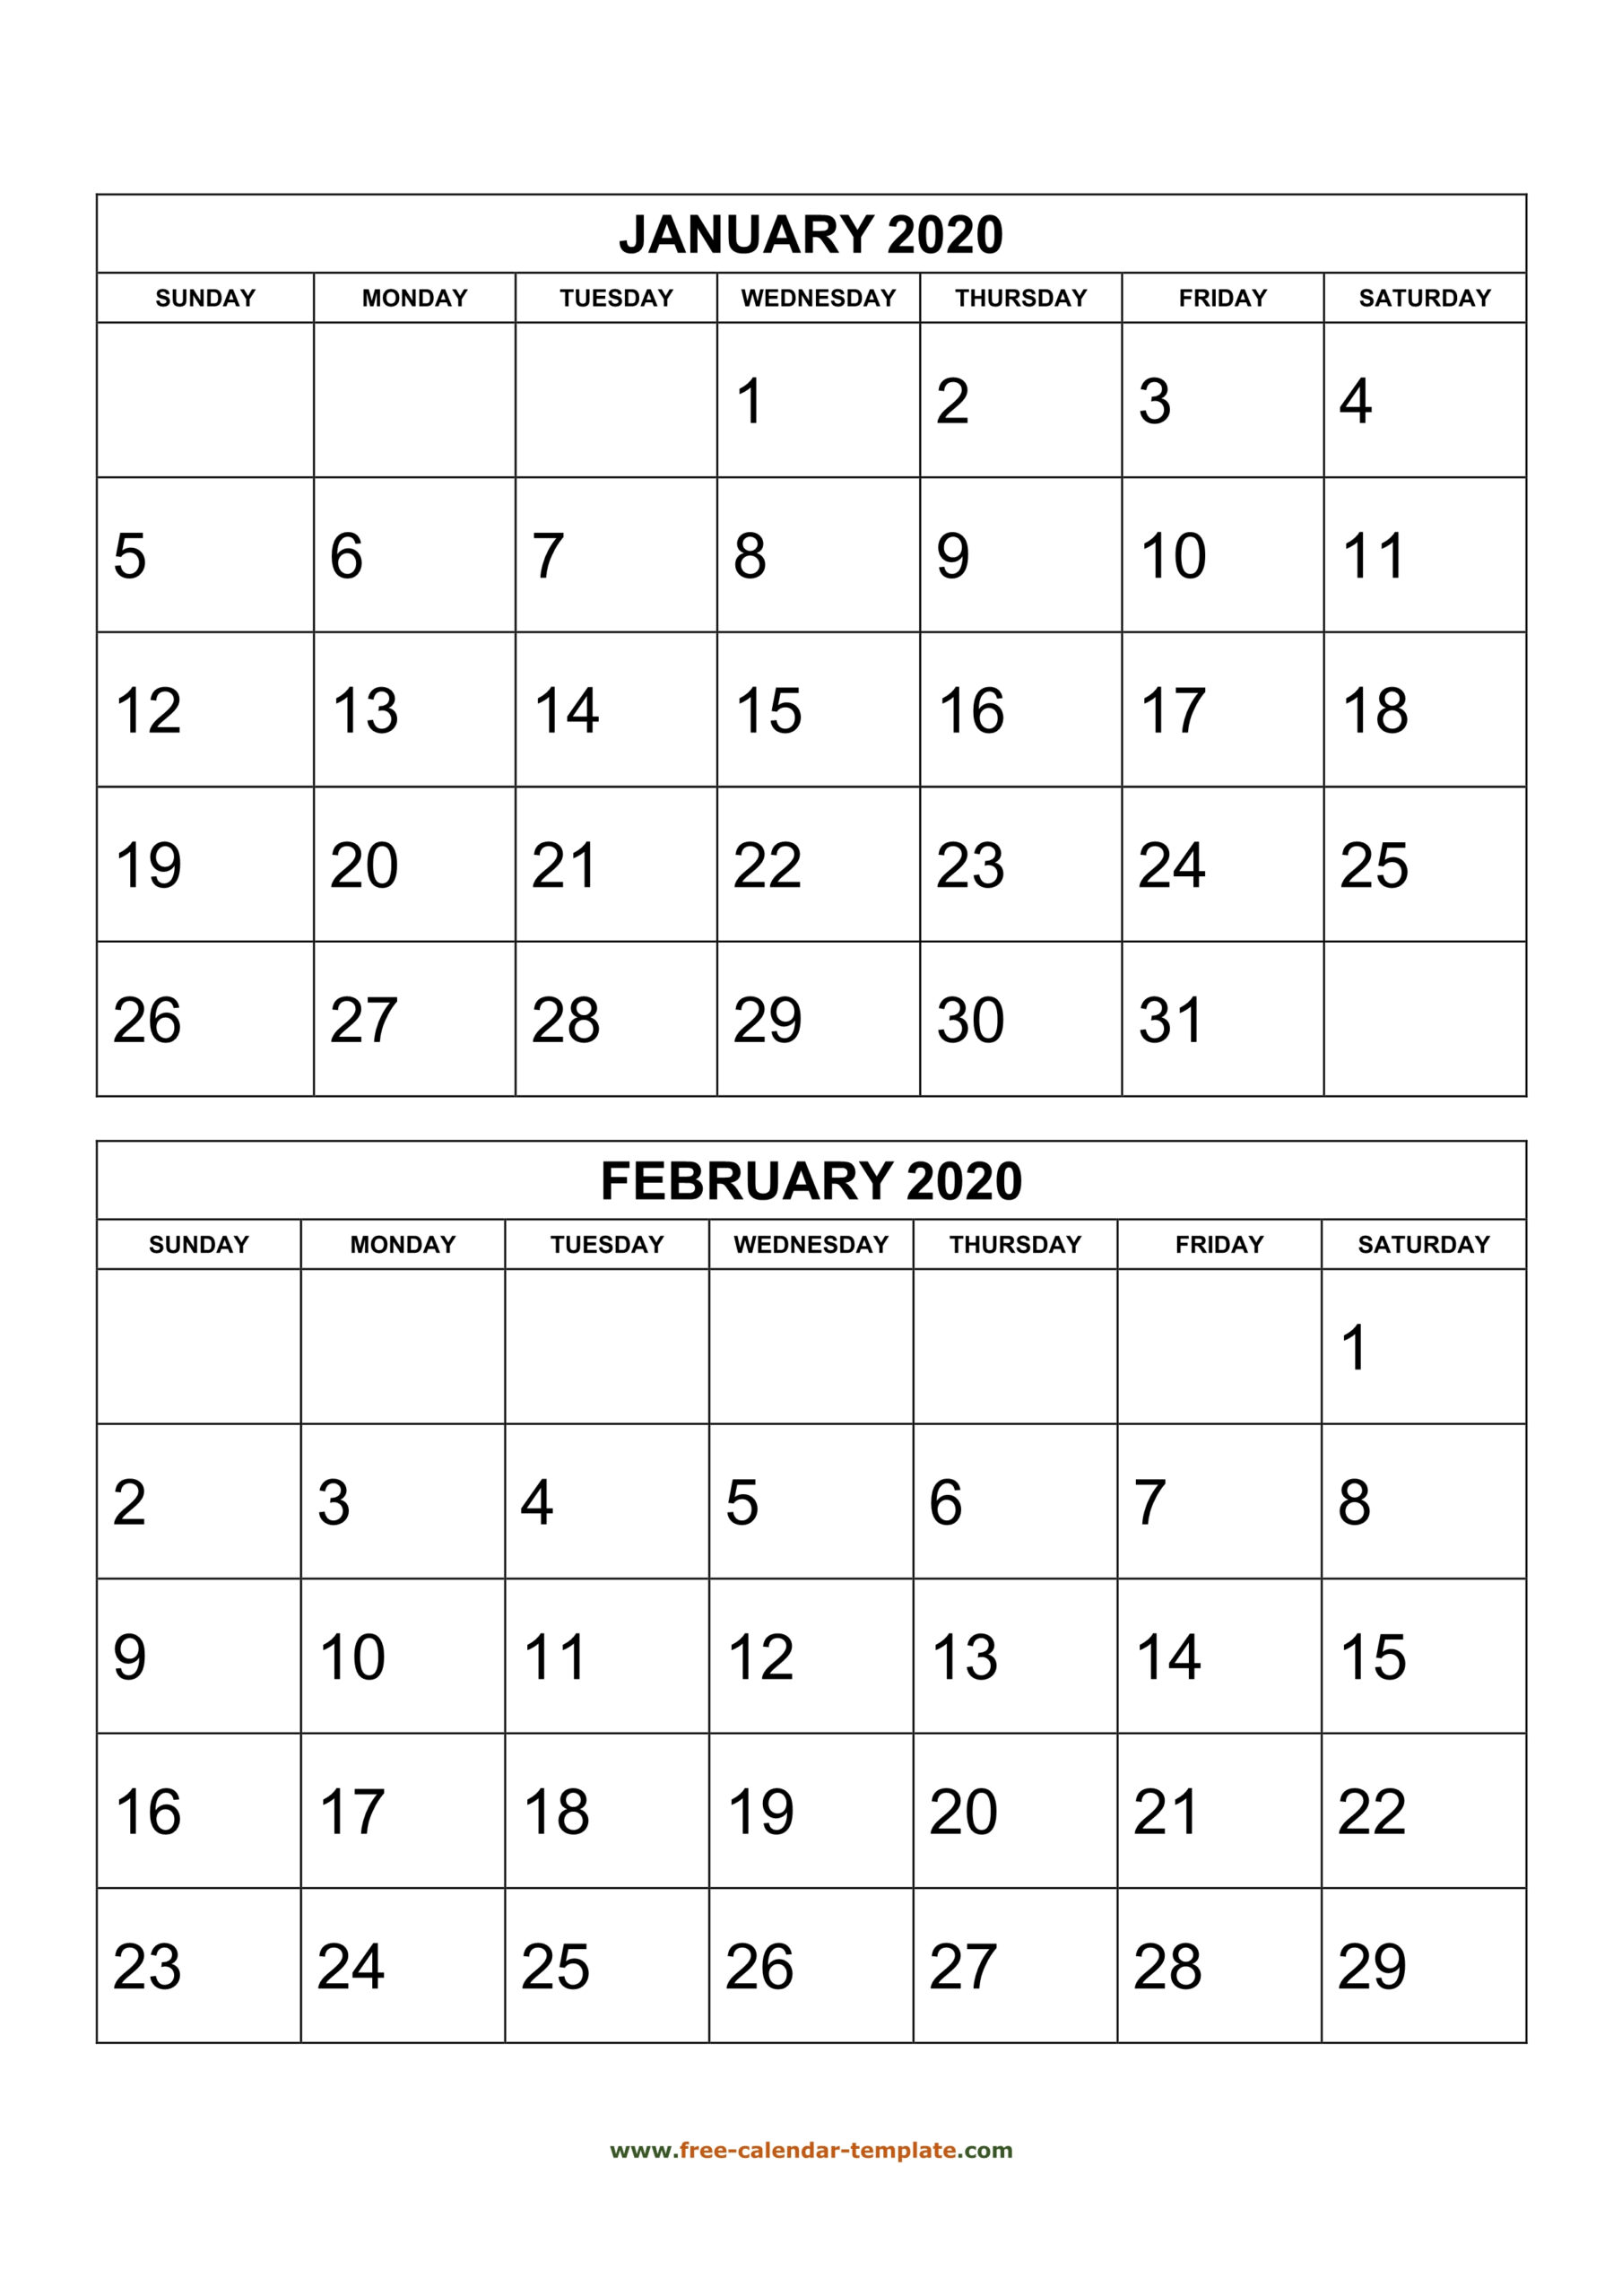 Monthly Calendar 2020, 2 Months Per Page (Vertical) | Free